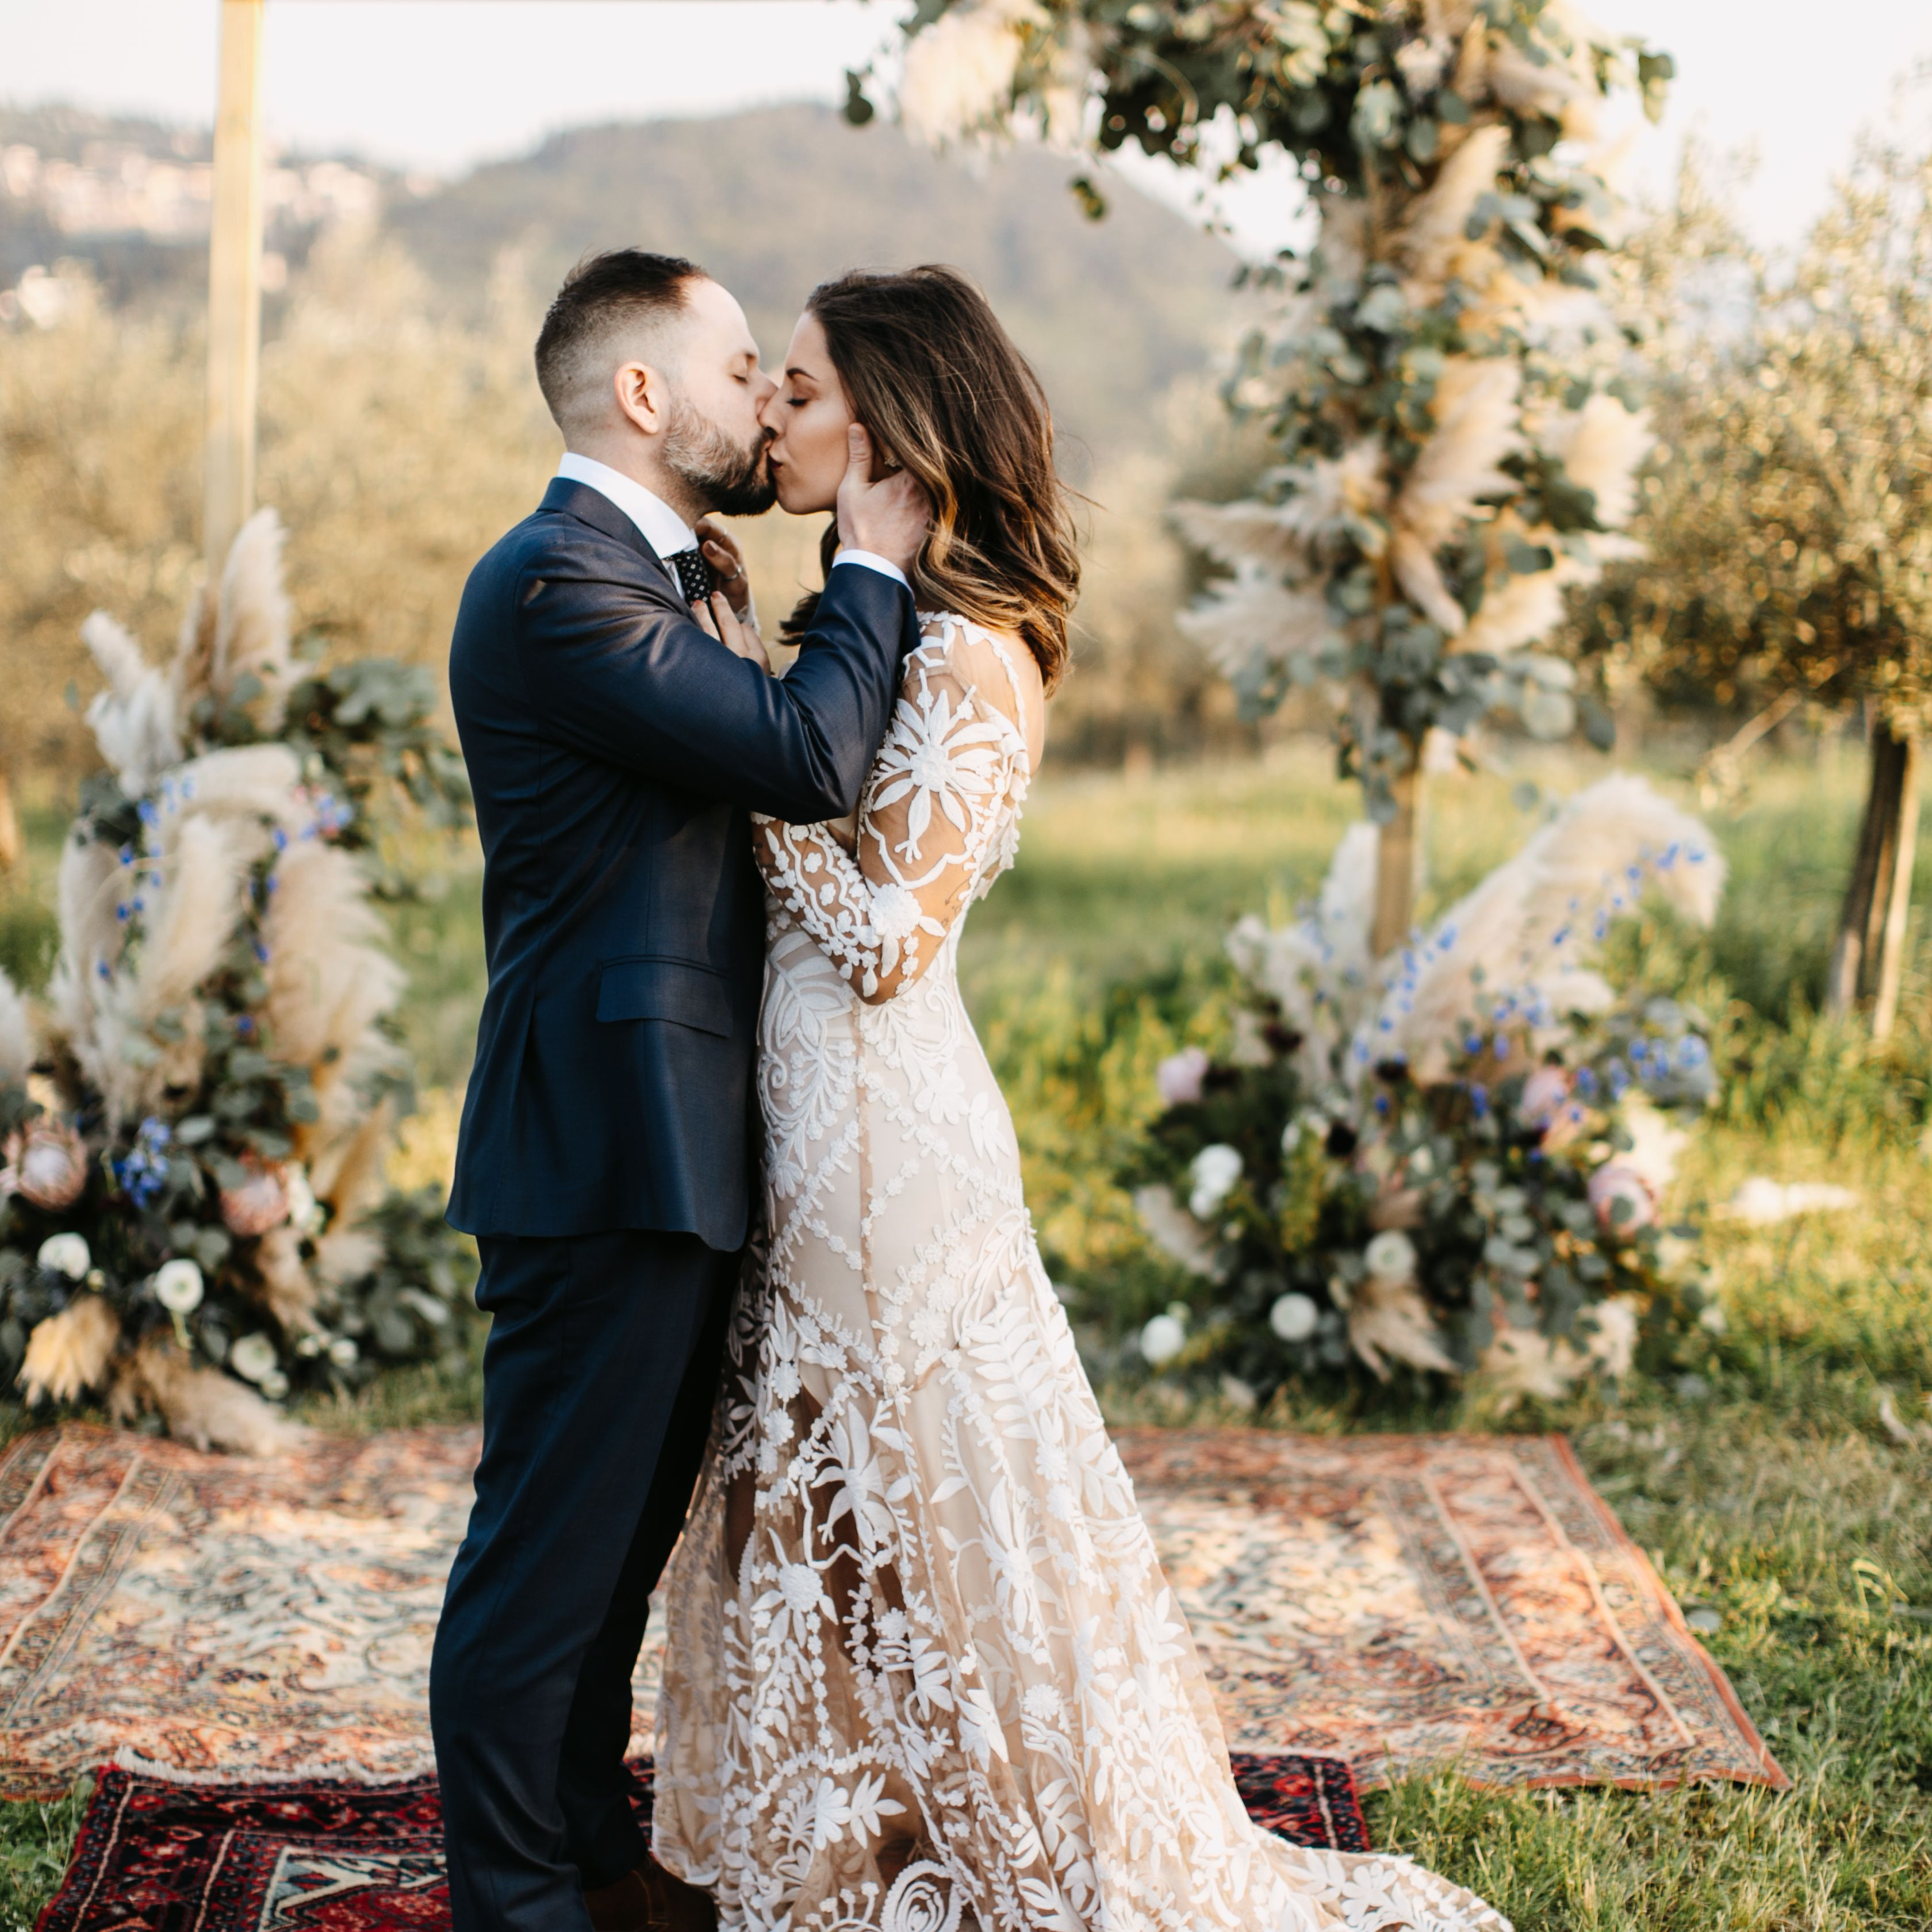 An Intimate Elopement In Italy